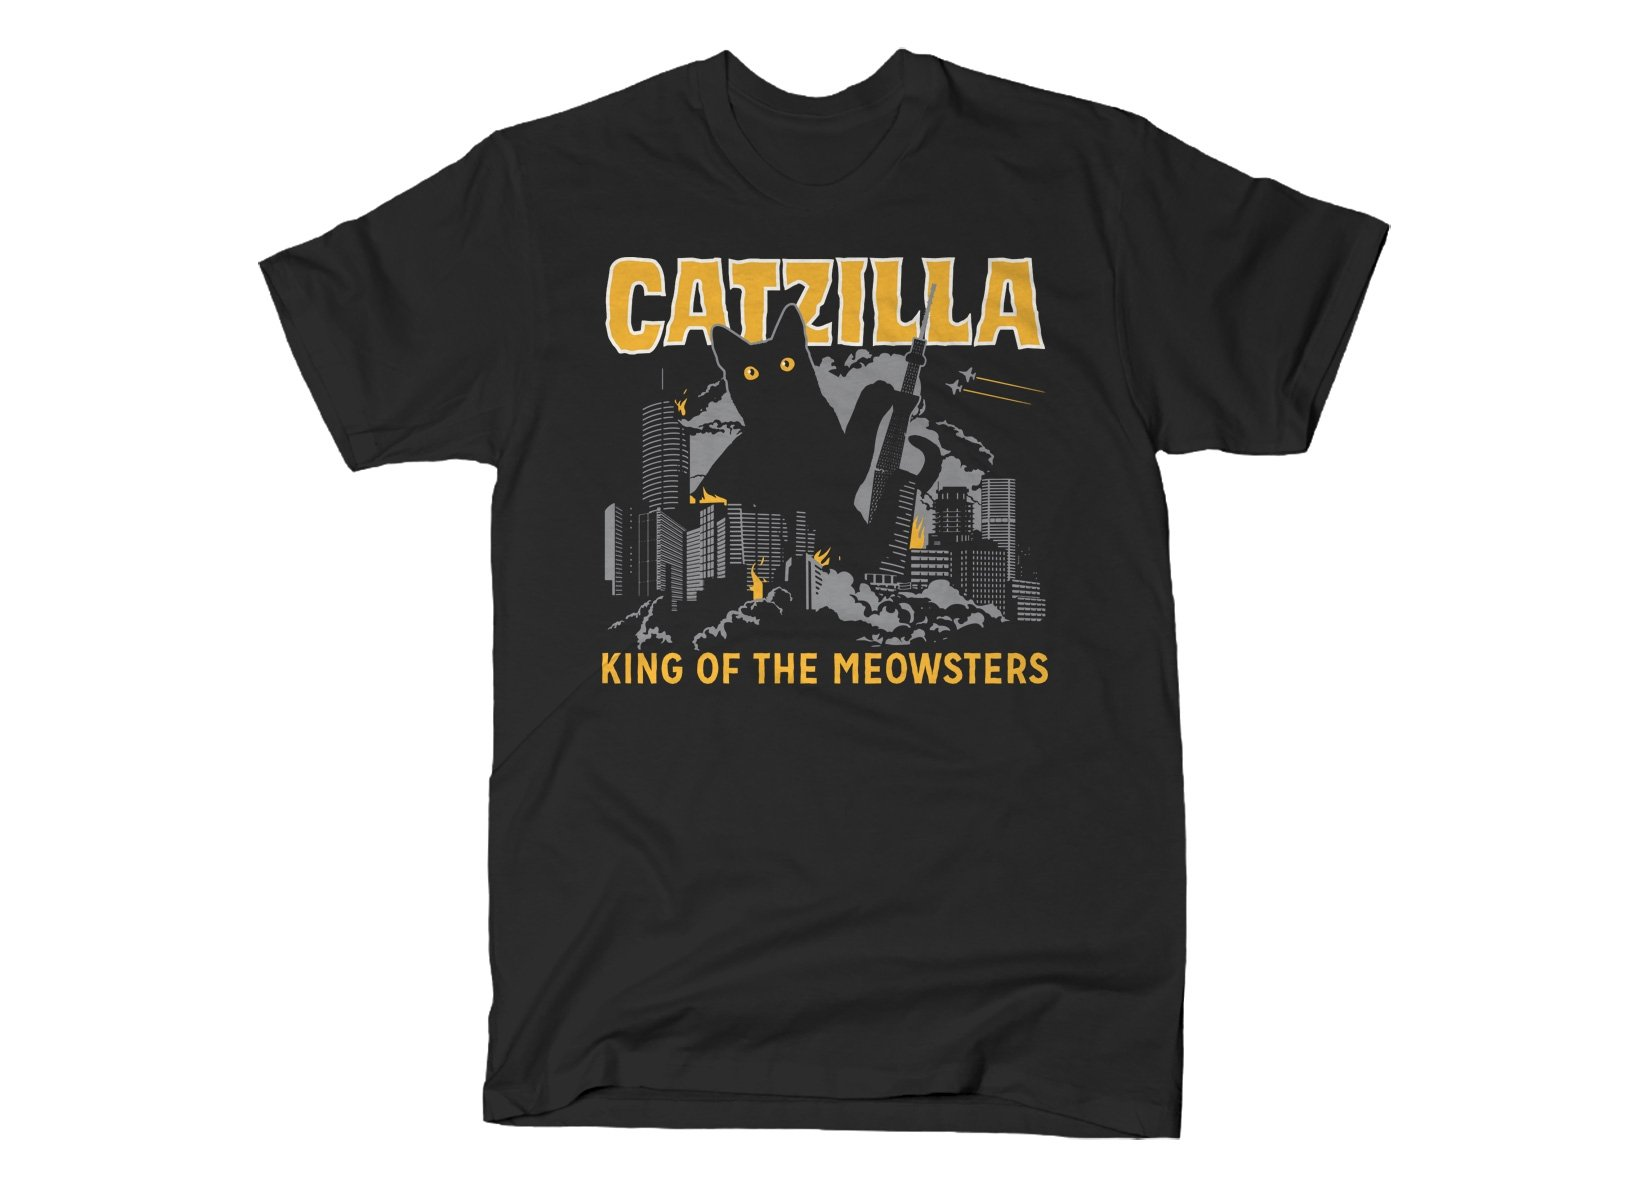 Catzilla on Mens T-Shirt